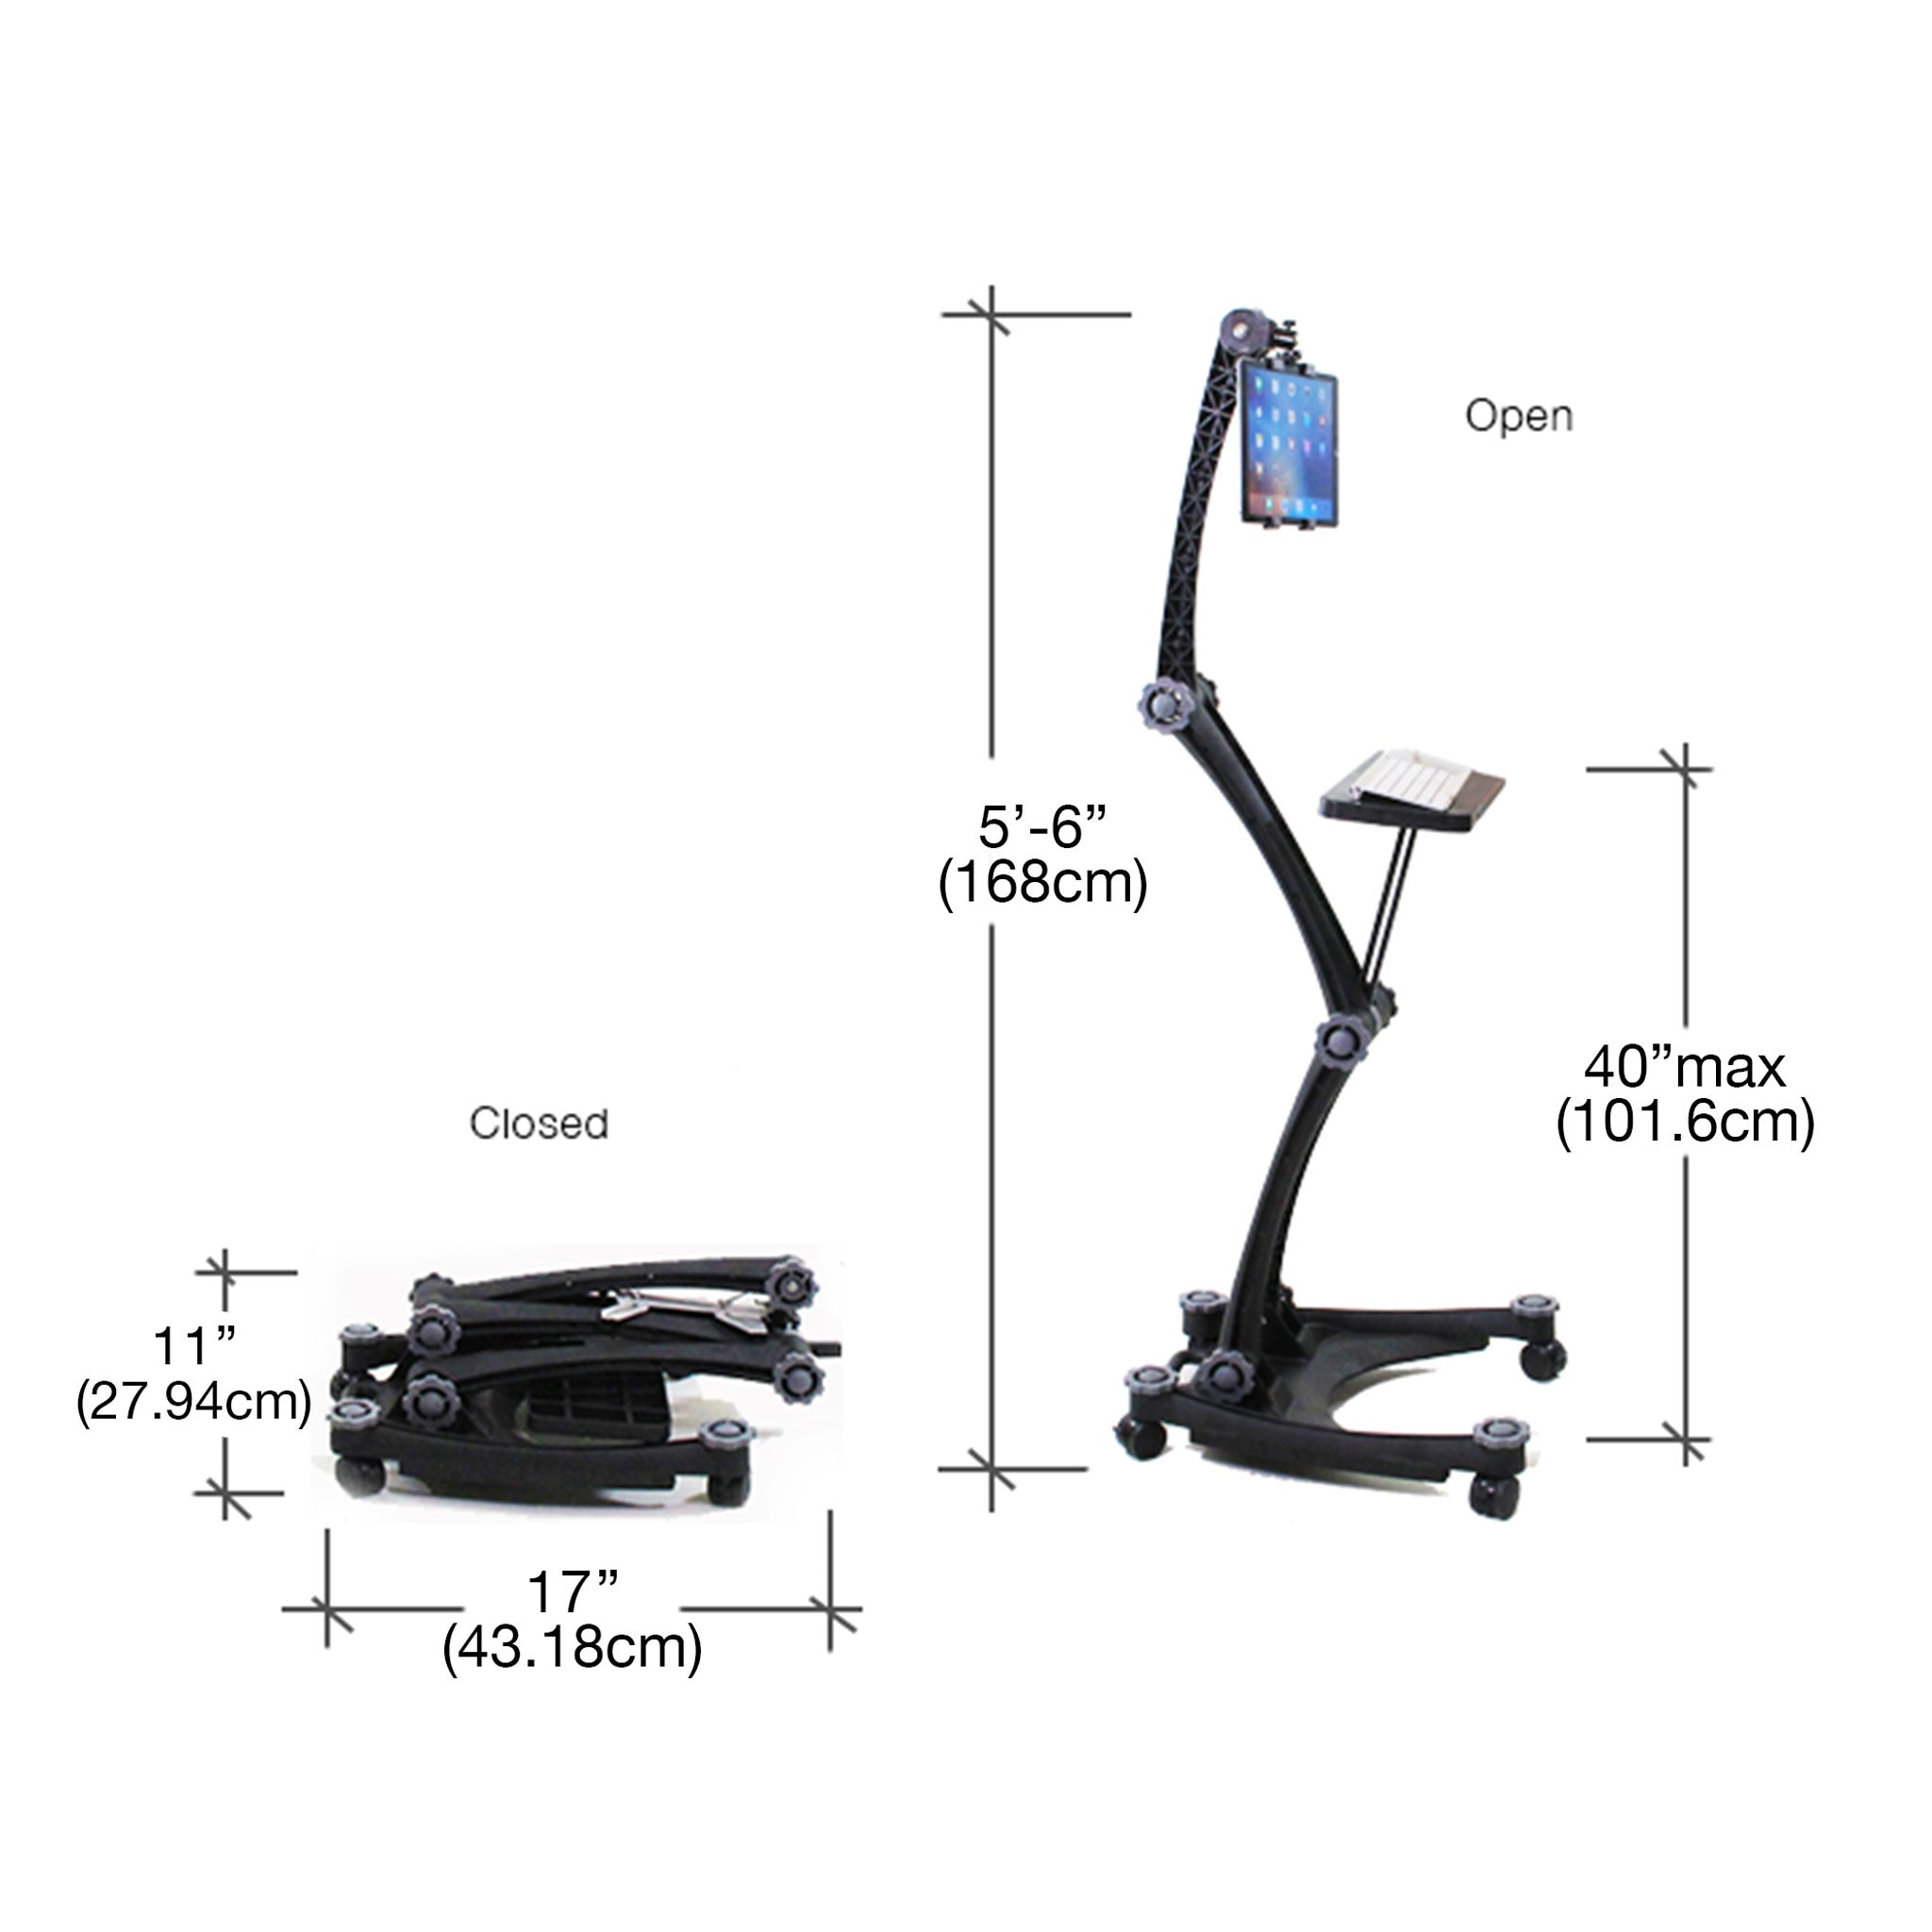 Dimensions of the ZStand AllStar Pro in its closed and full extension positions.